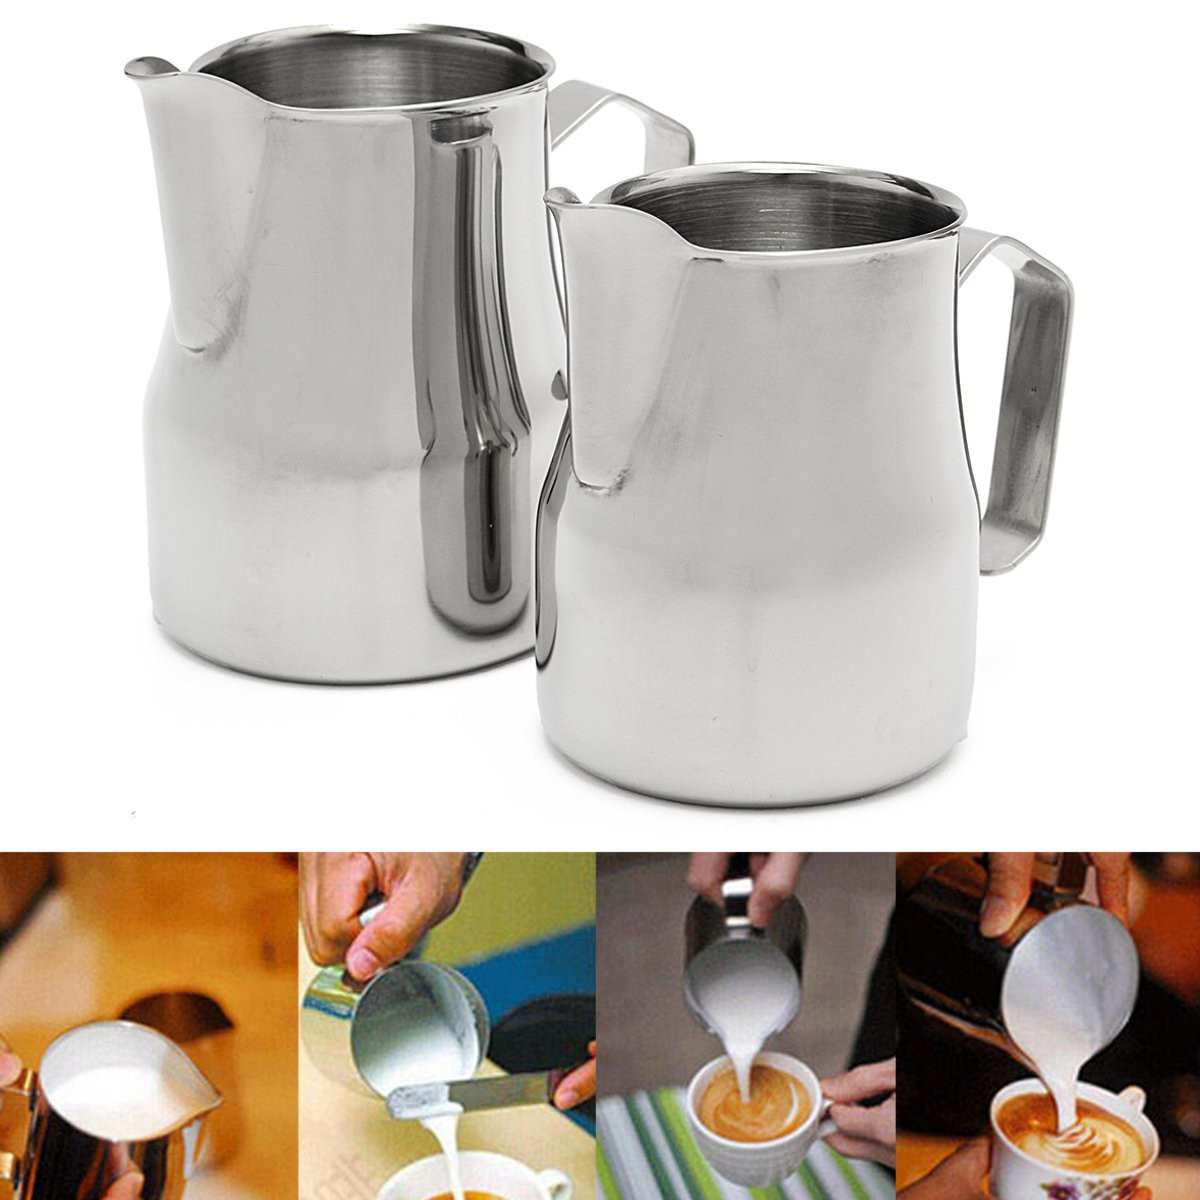 High Qaulity Stainless Steel Milk Frothing Jug Espresso Coffee Pitcher Barista Craft Coffee Latte Milk Frothing